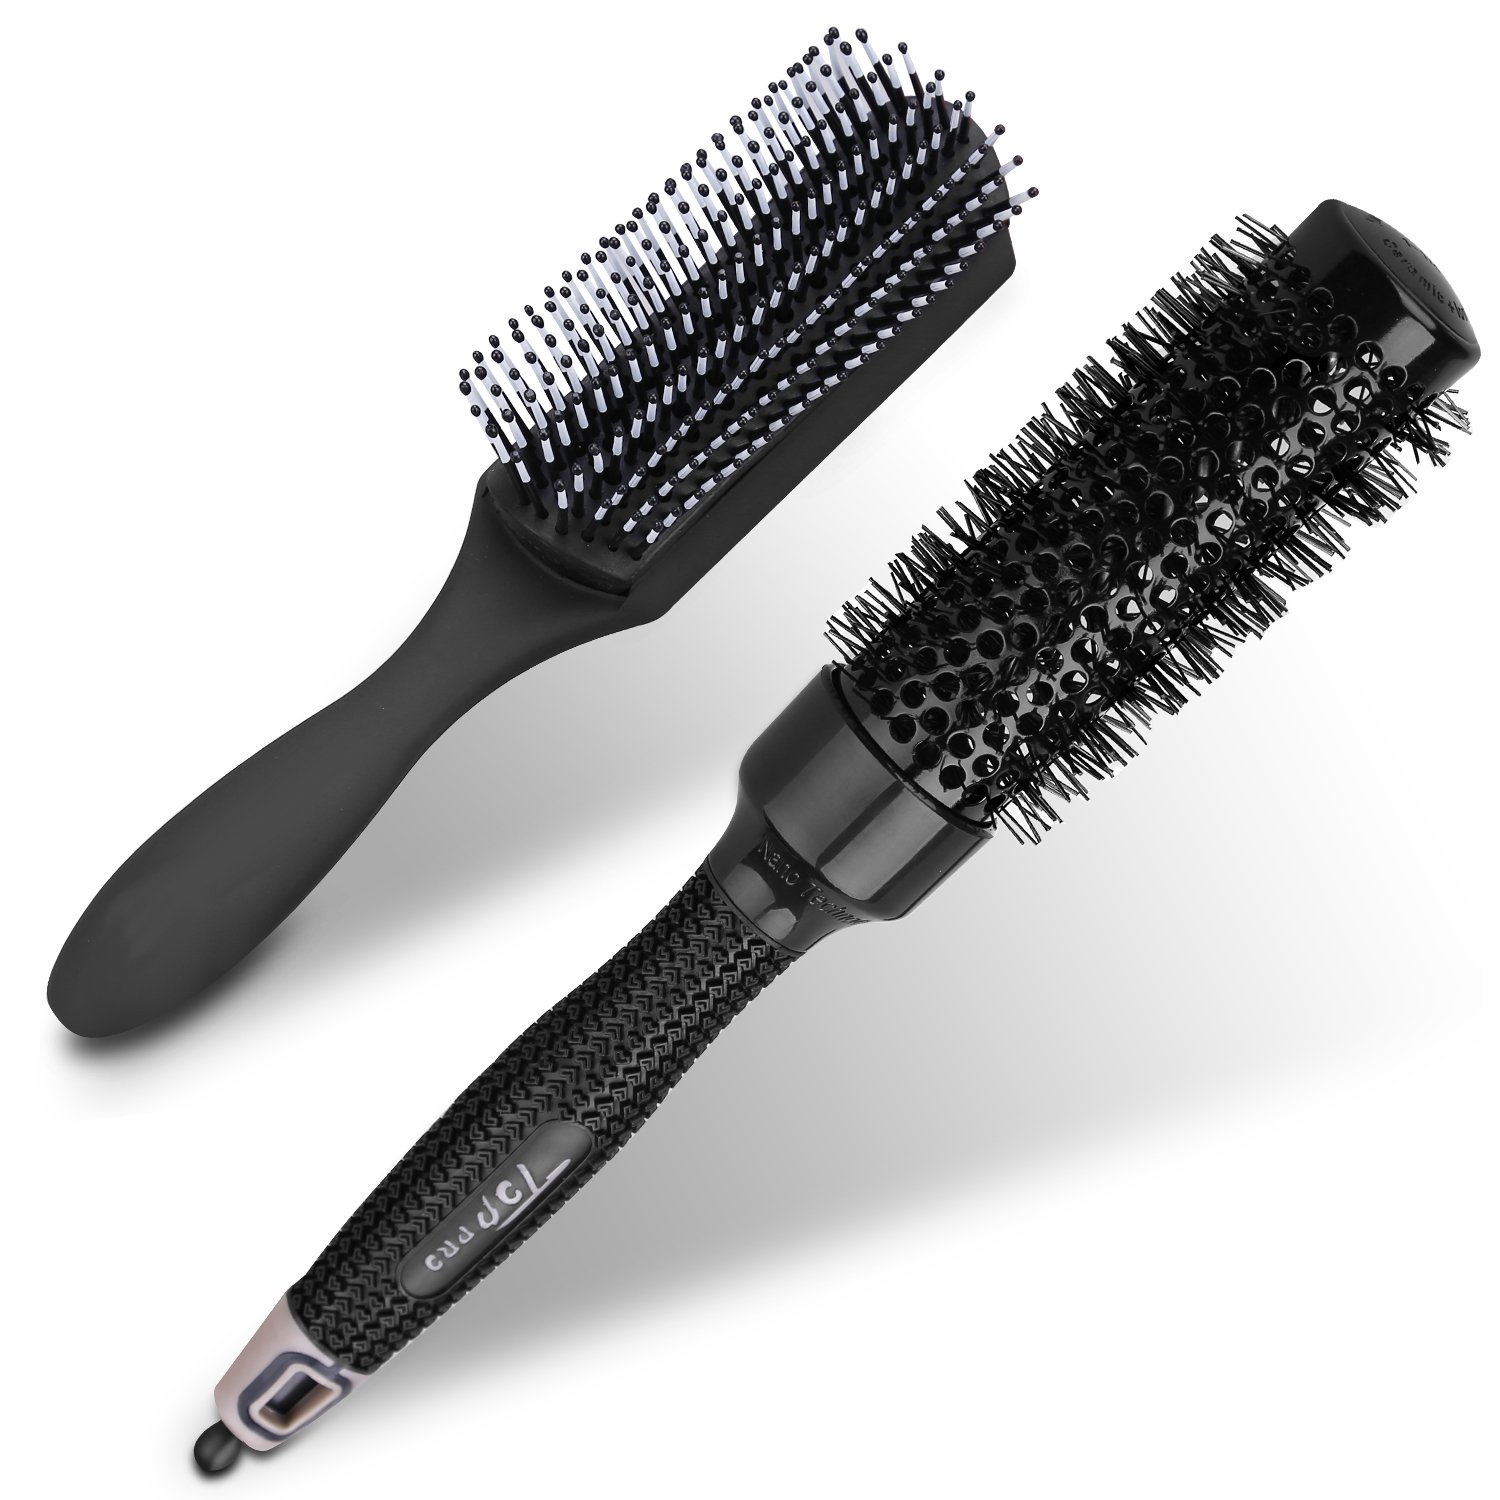 2 Pieces Hair Brush - Thermal Ceramic & Ionic Round Hair Brush - Removable Massage Paddle Wet or Dry Hair Brushes for Women Men Girls and Boys